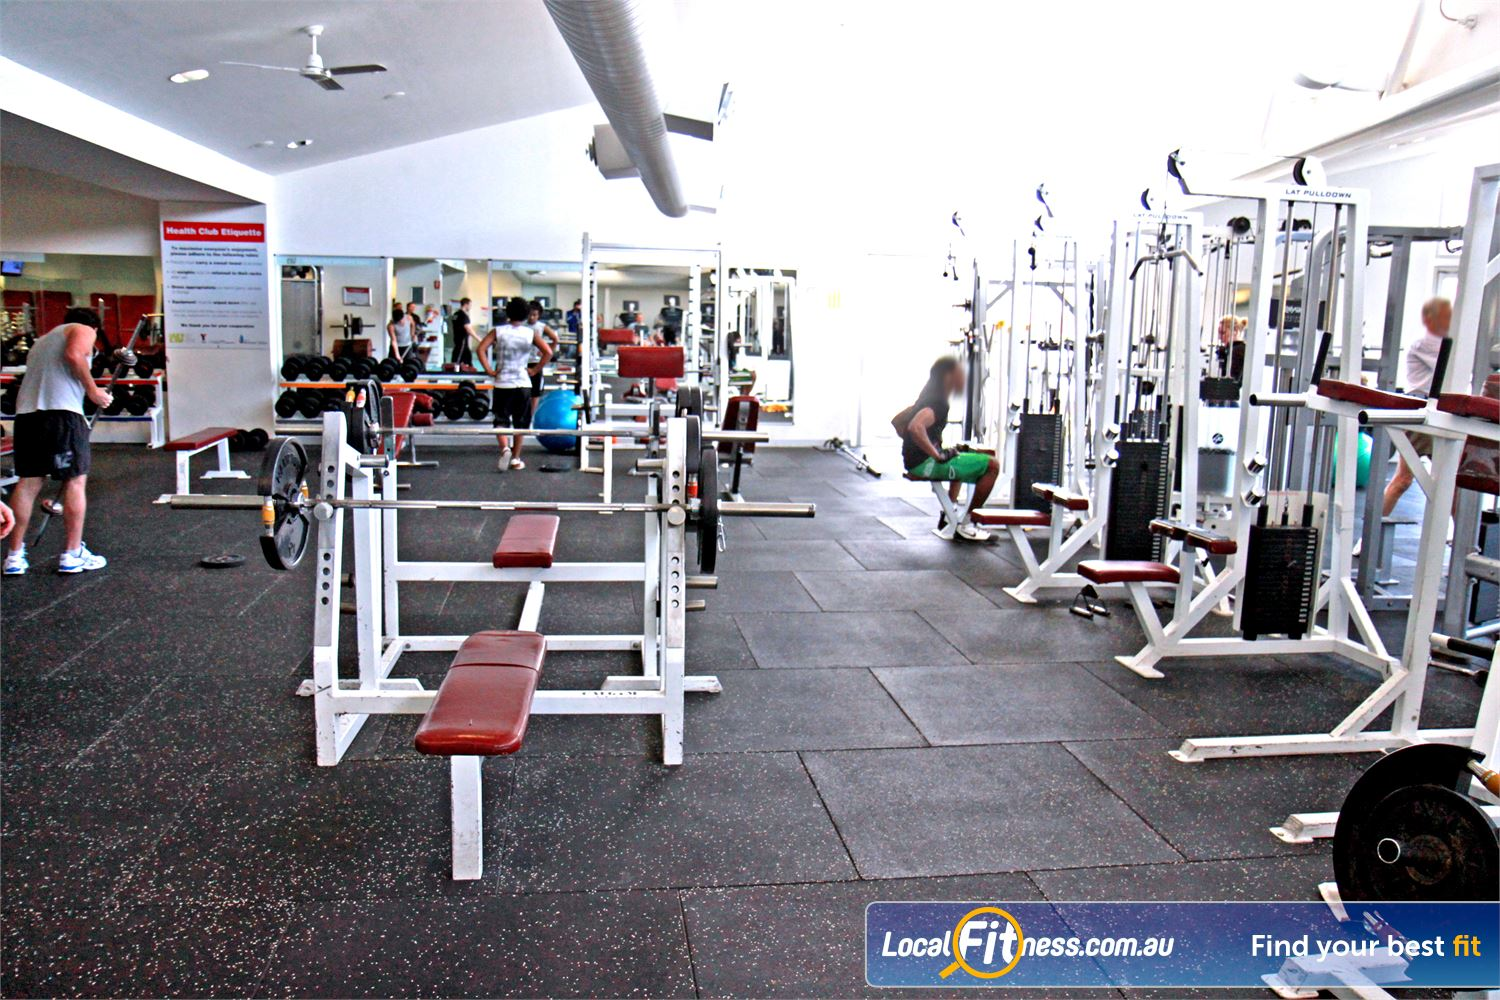 Ascot Vale Leisure Centre Ascot Vale Our Ascot Vale gym facility spans over 1000 sq/m!